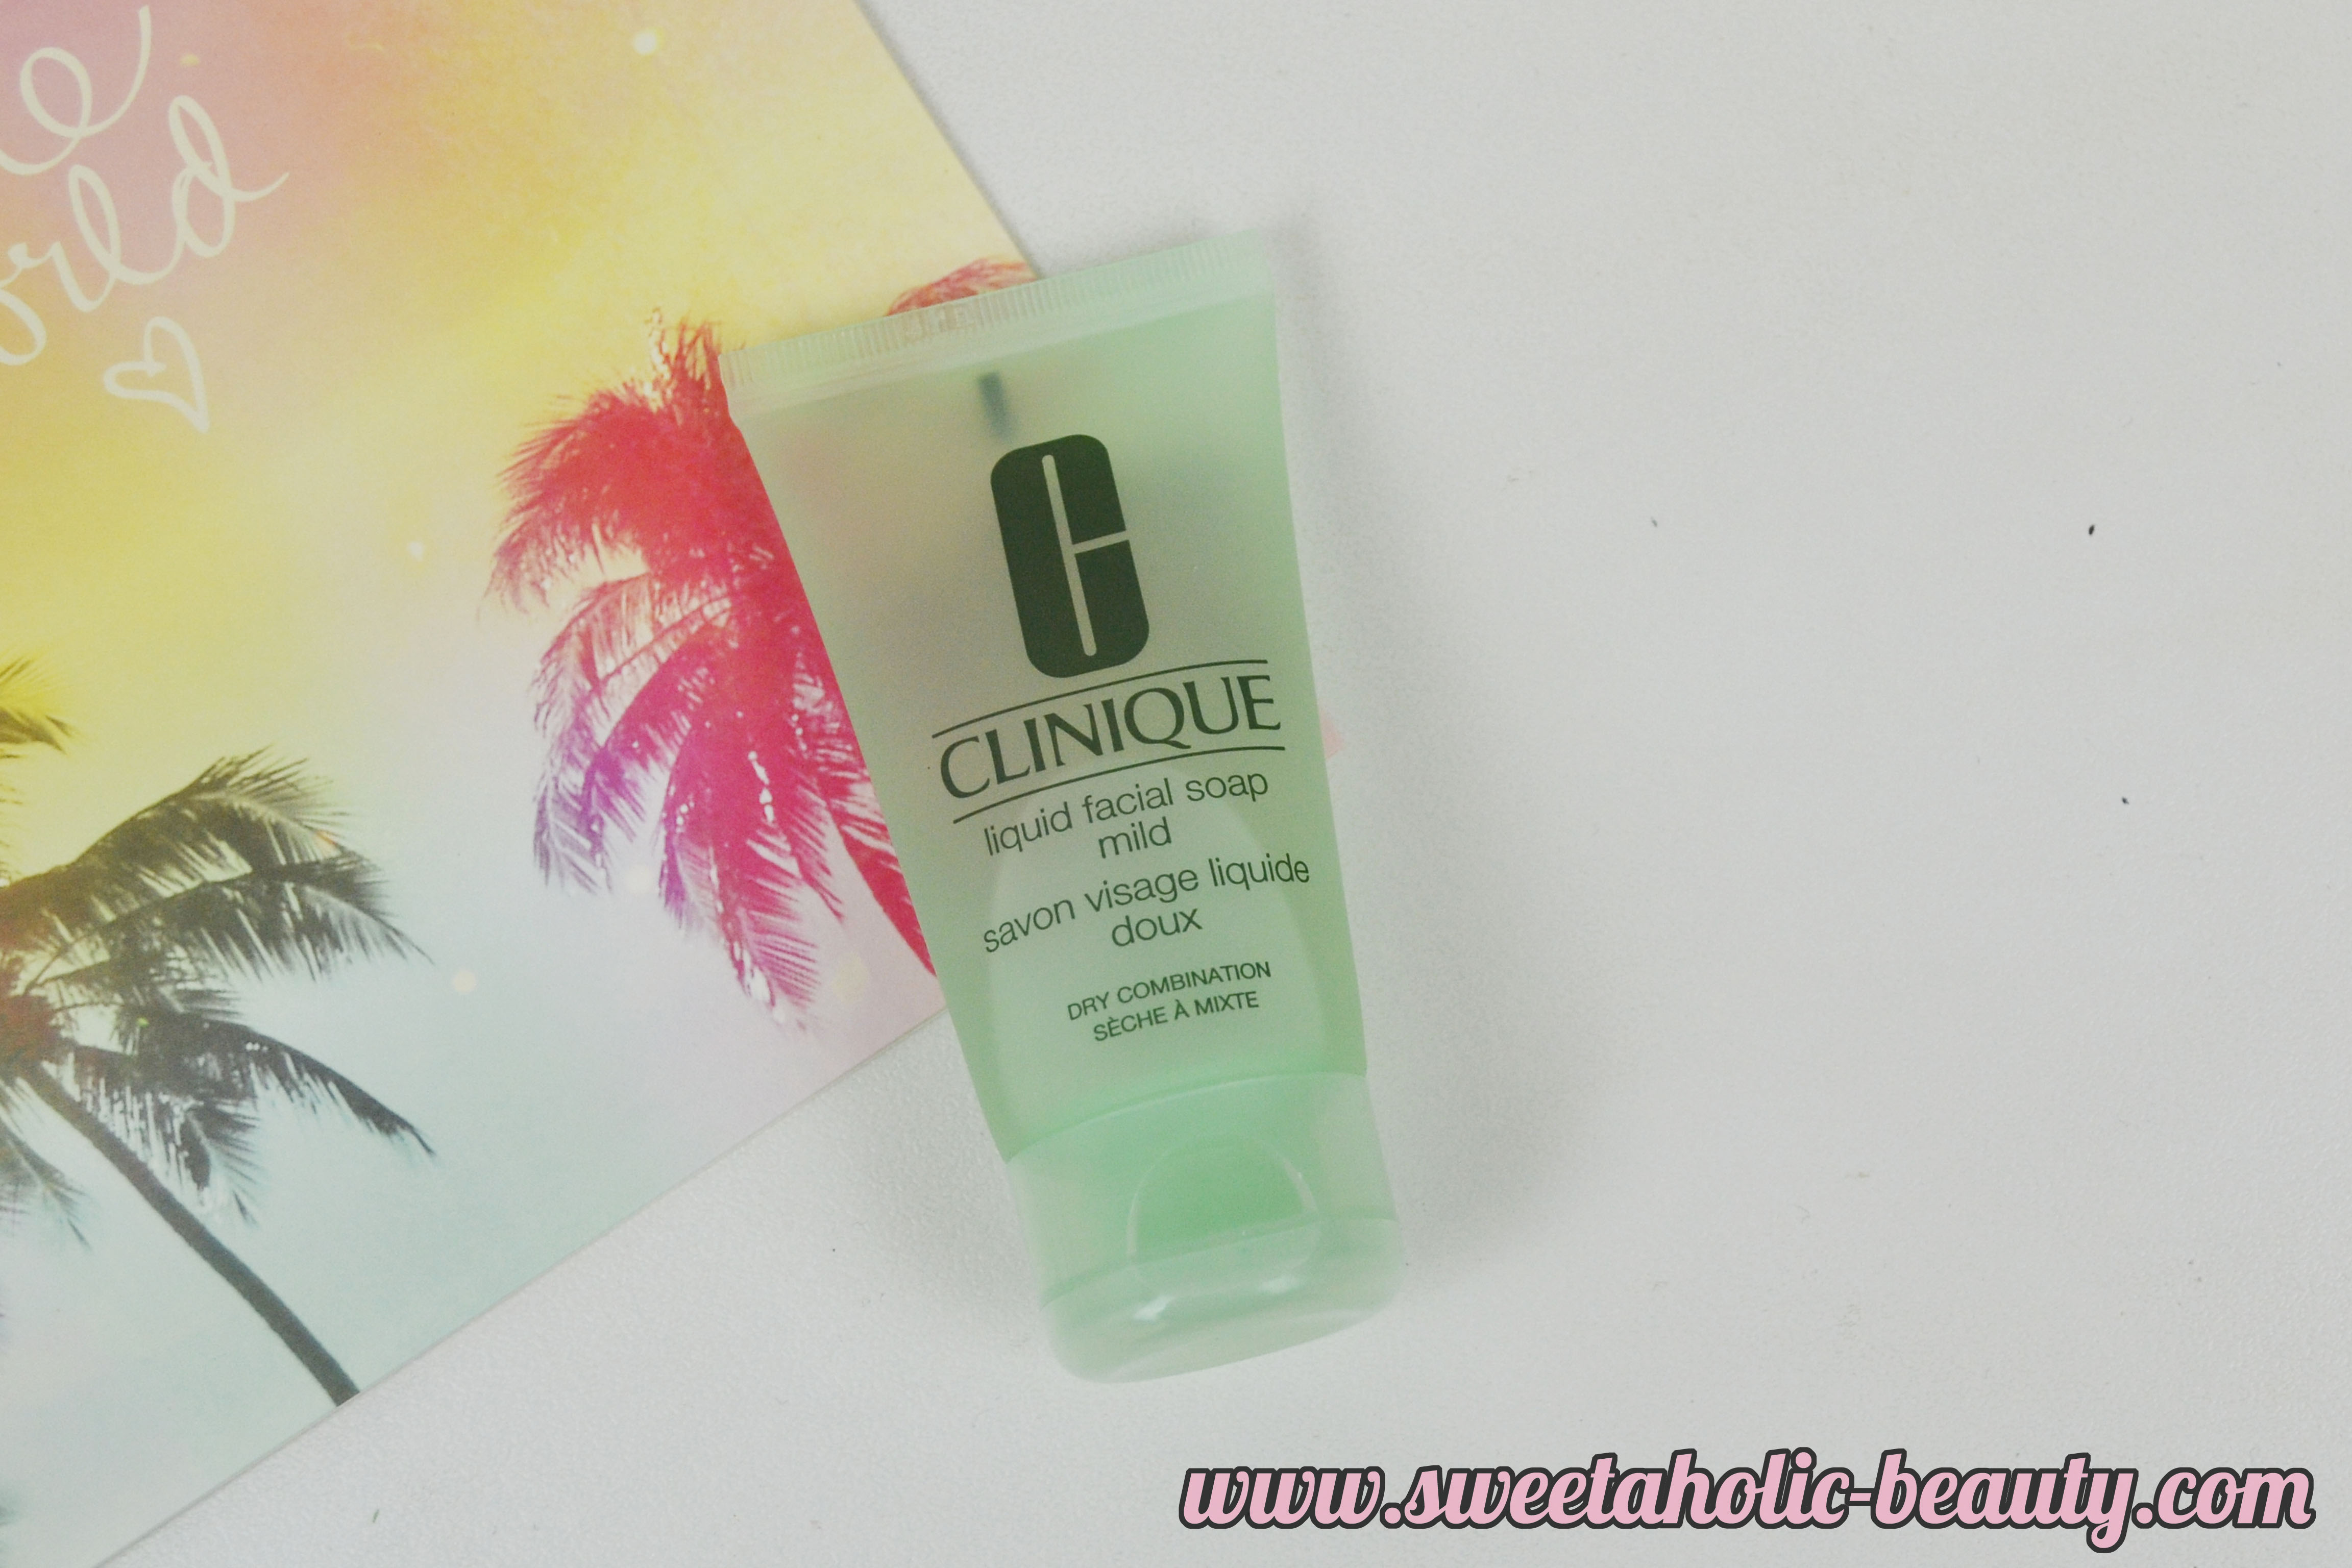 Activeskin Mini Haul Clinique 3 Step System - Sweetaholic Beauty